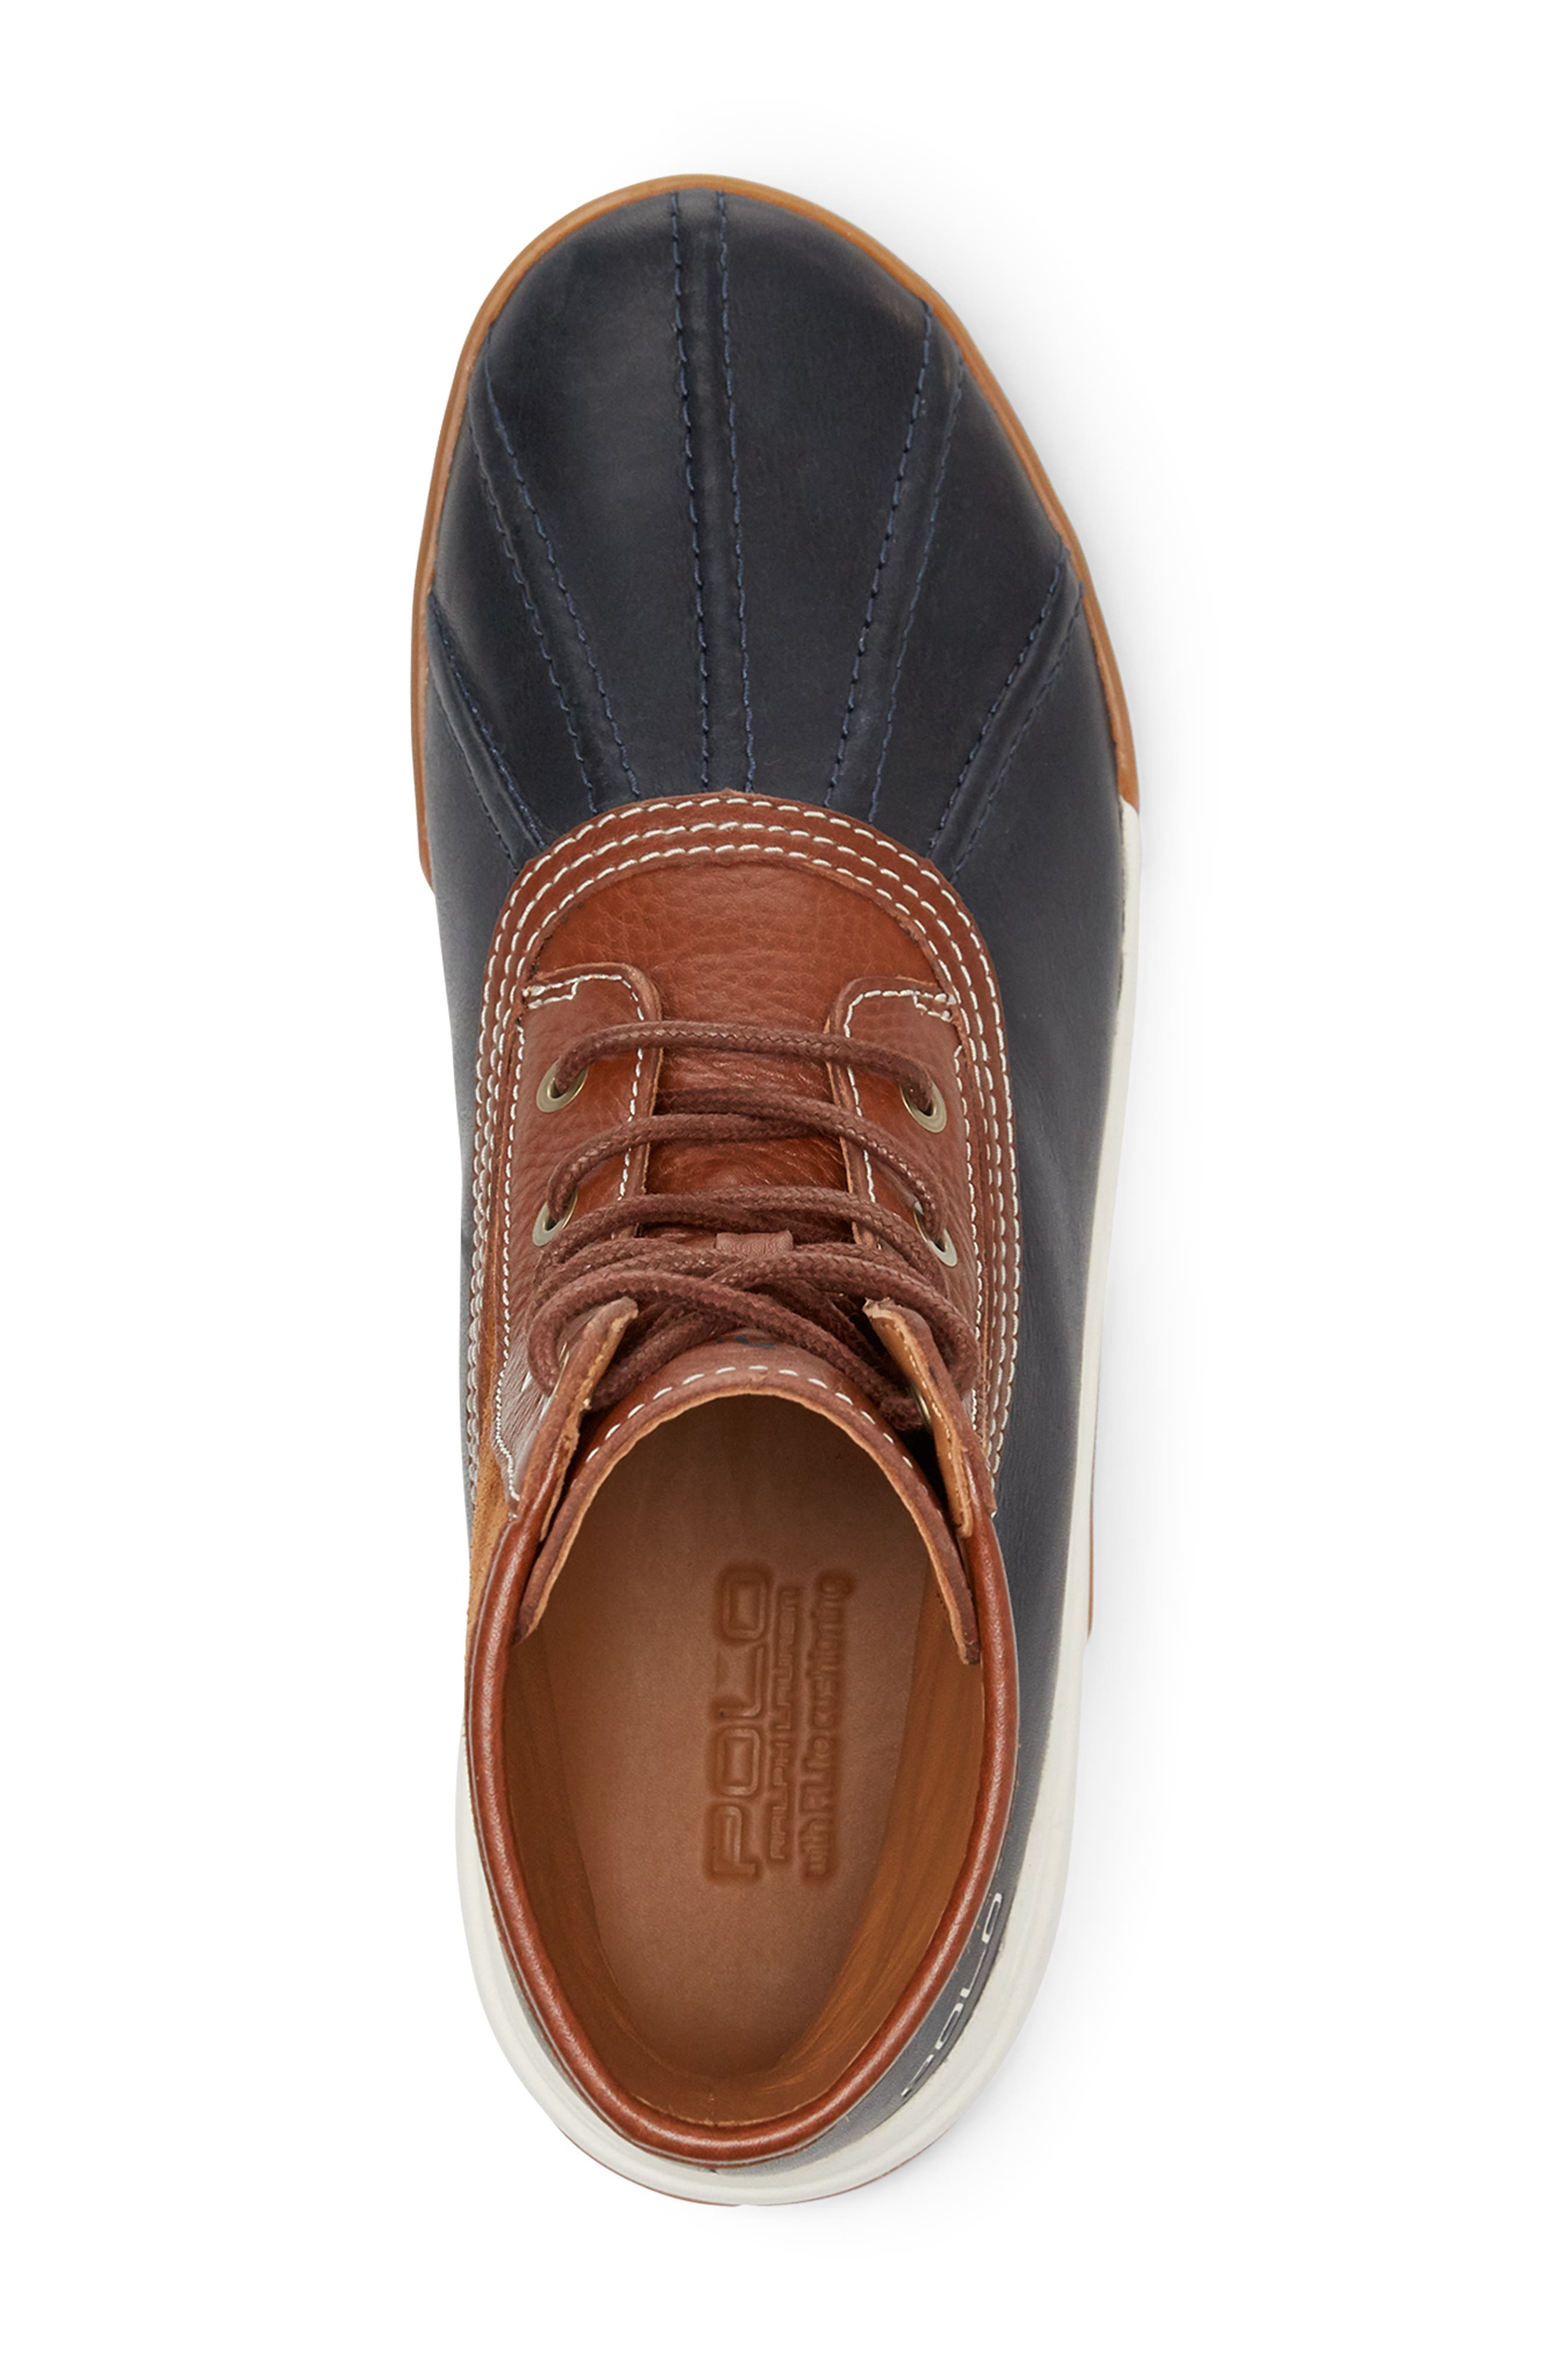 POLO RALPH LAUREN, Declan Water Repellent Duck Boot, Alternate thumbnail 3, color, SNUFF/ NAVY LEATHER